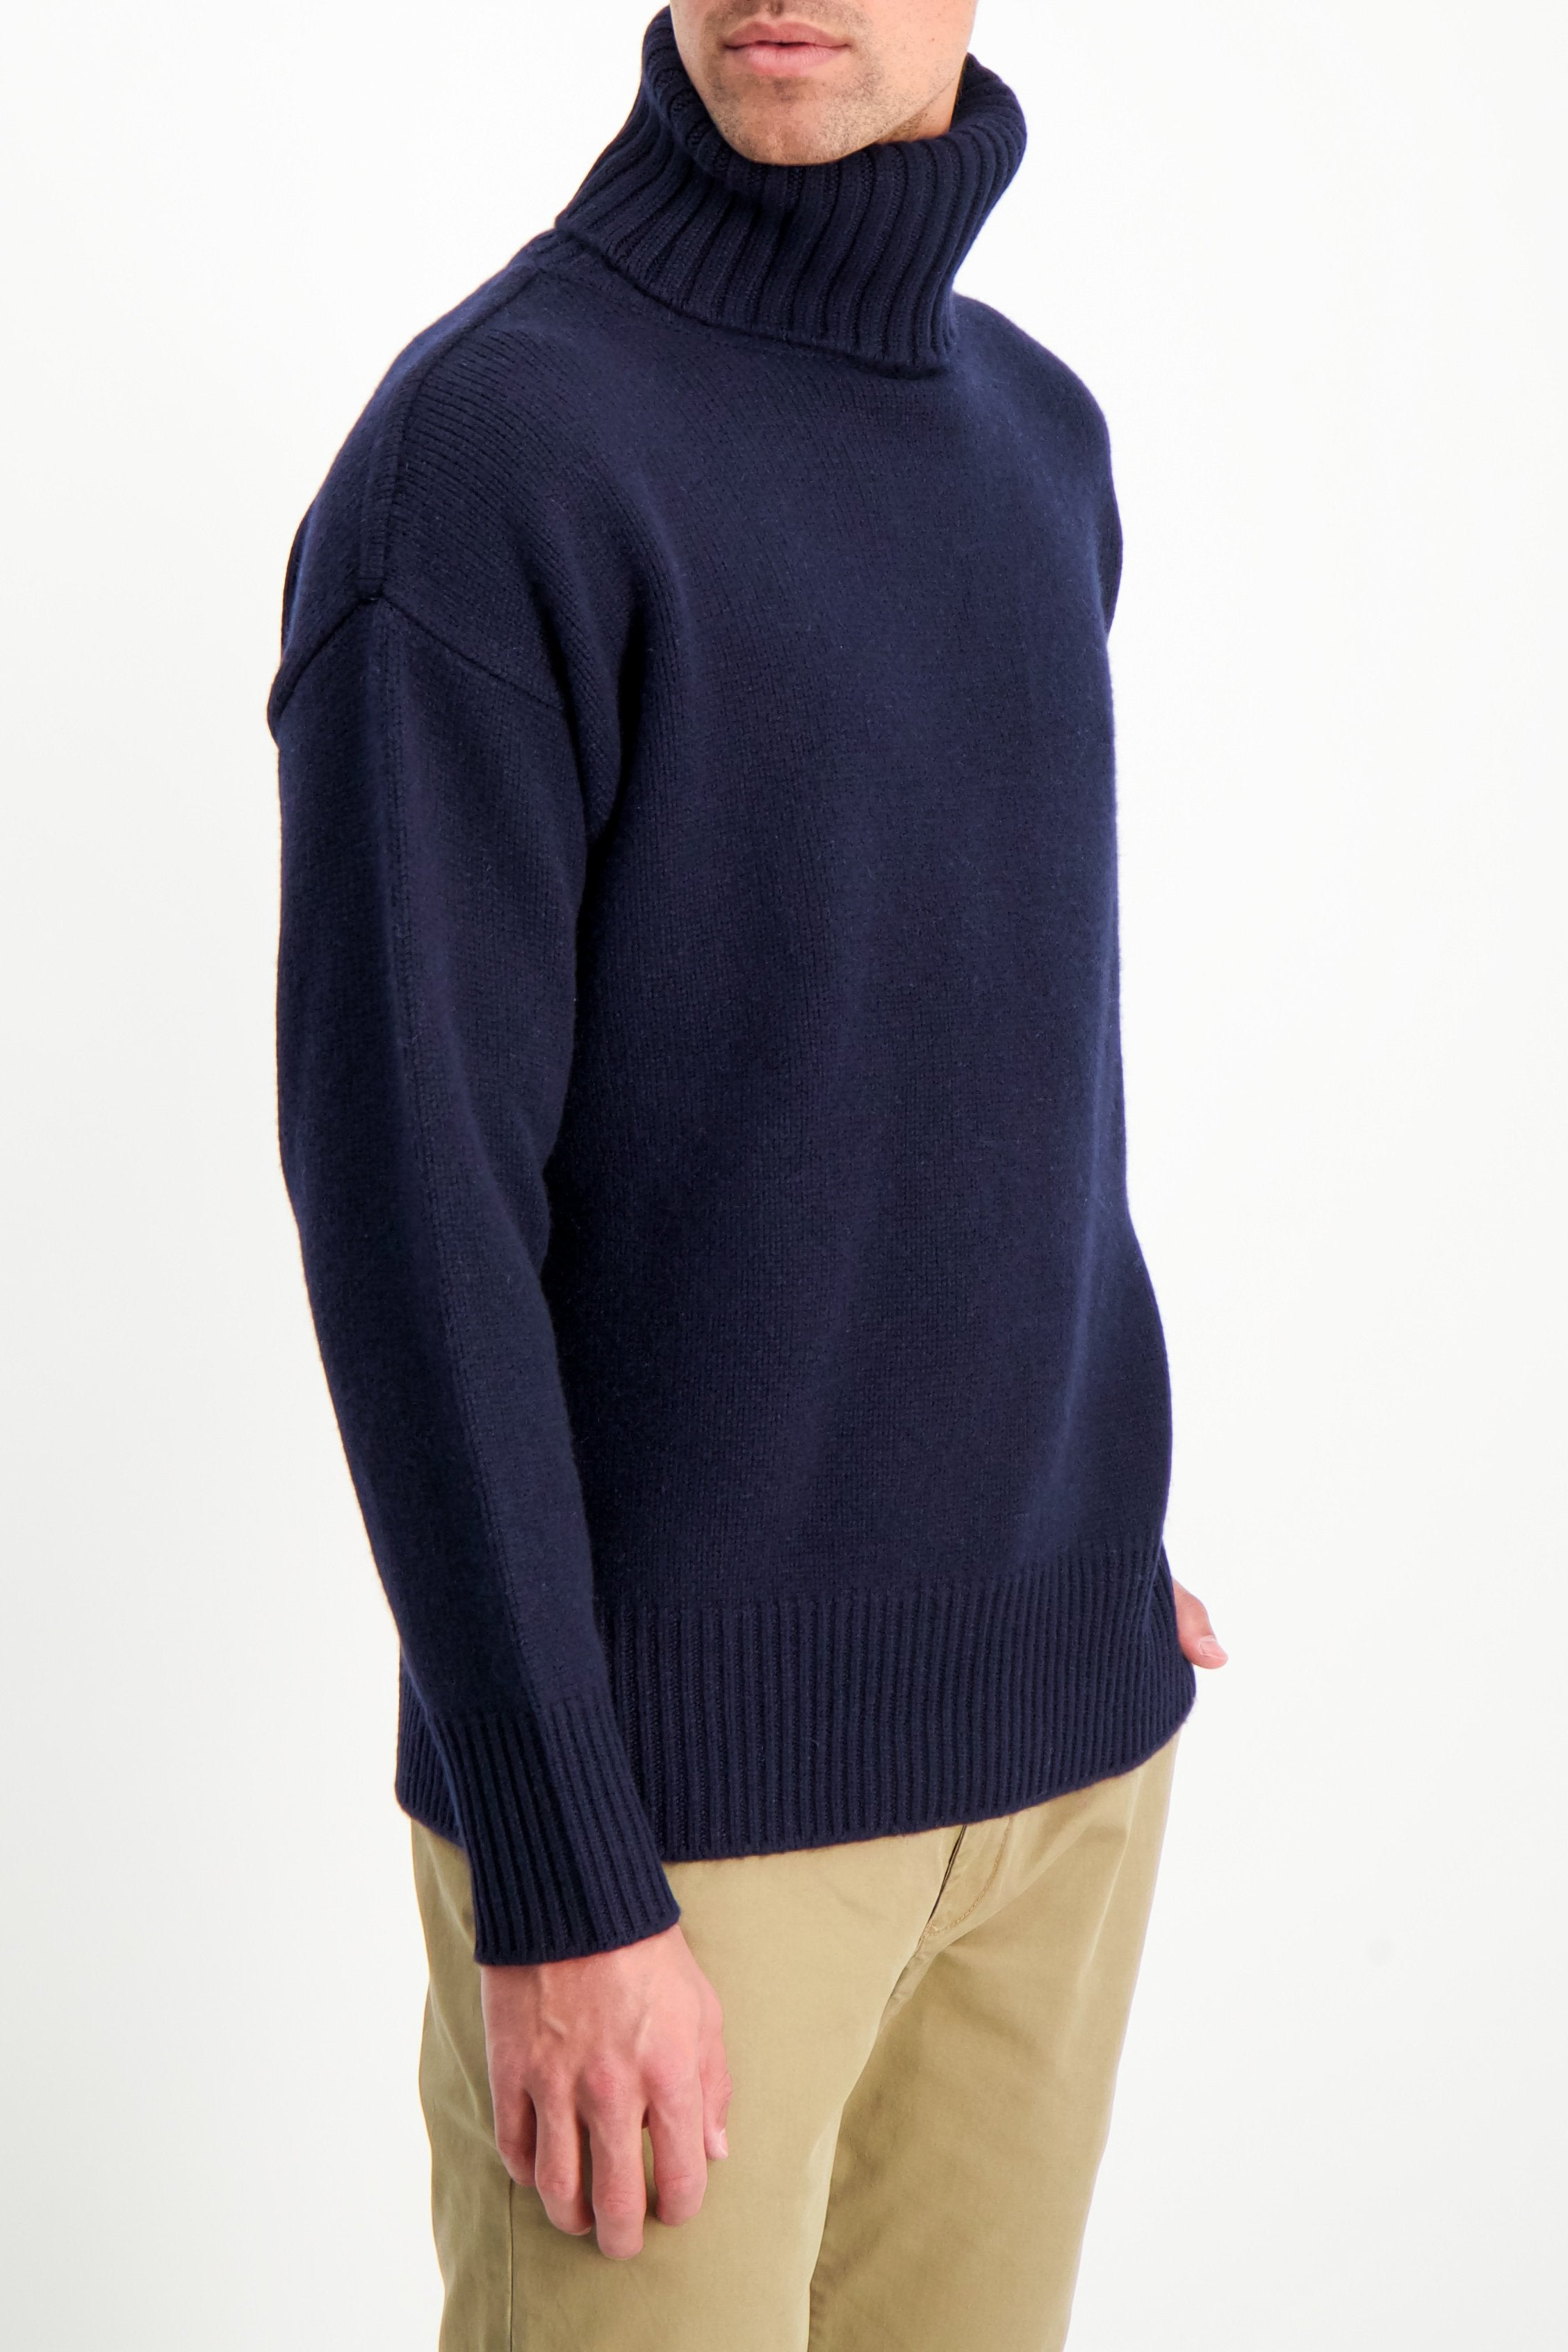 Front Crop Image Of Model Wearing Extreme Cashmere N°20 Oversize Xtra Sweater Navy